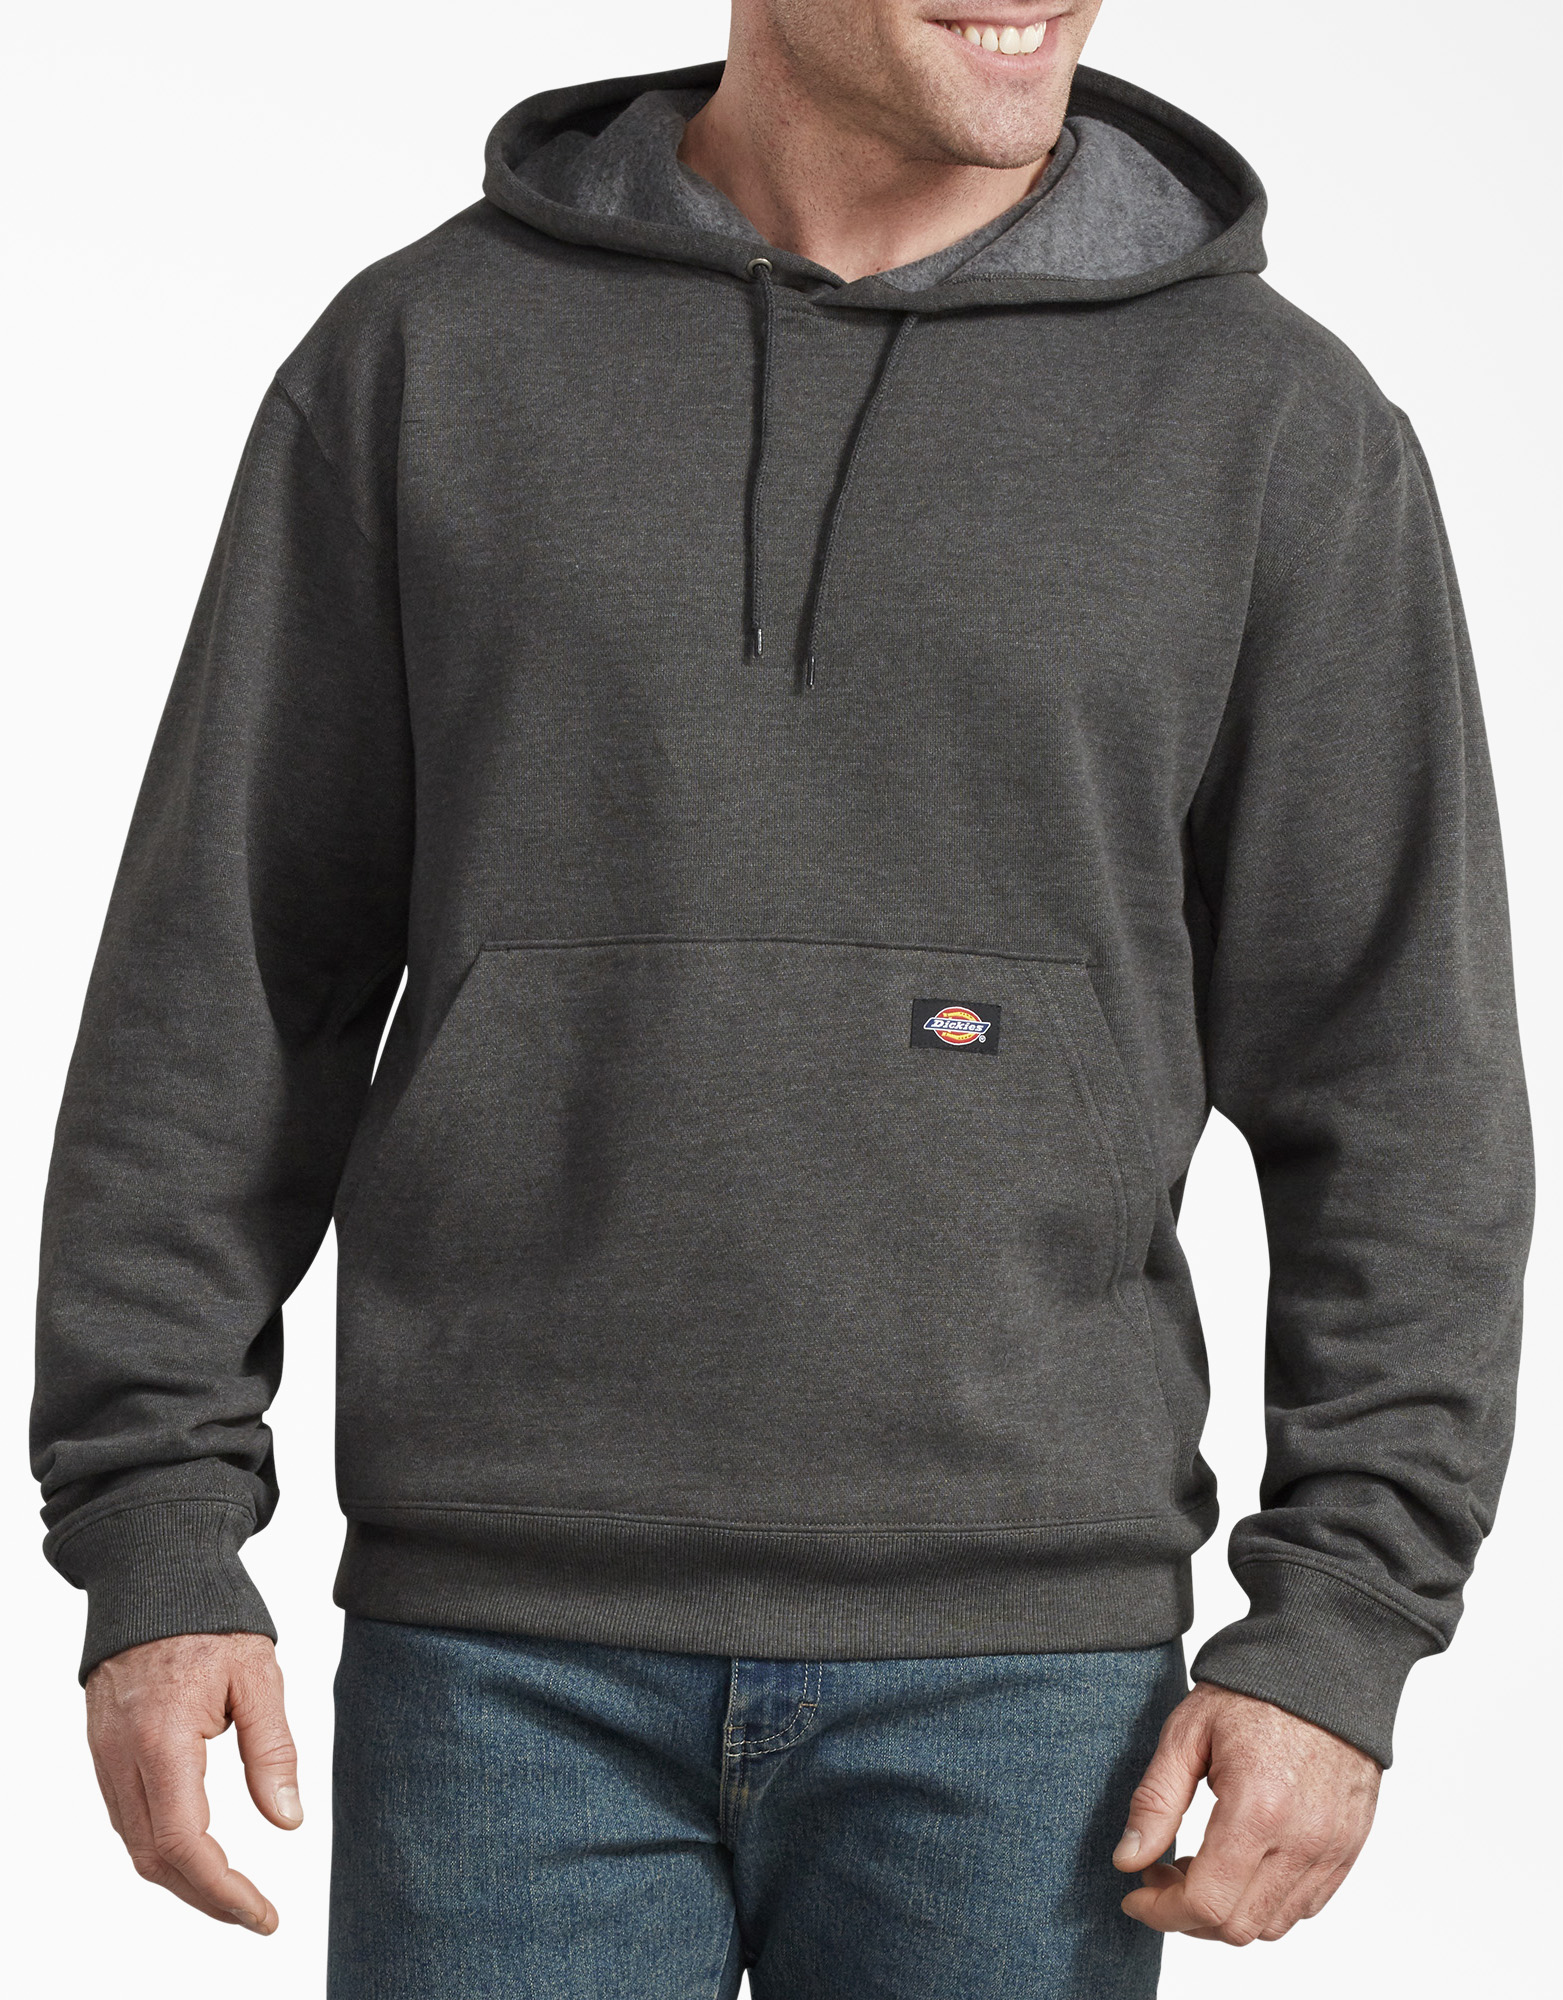 Fleece Pullover Hoodie - Dark Heather Gray (IYD)